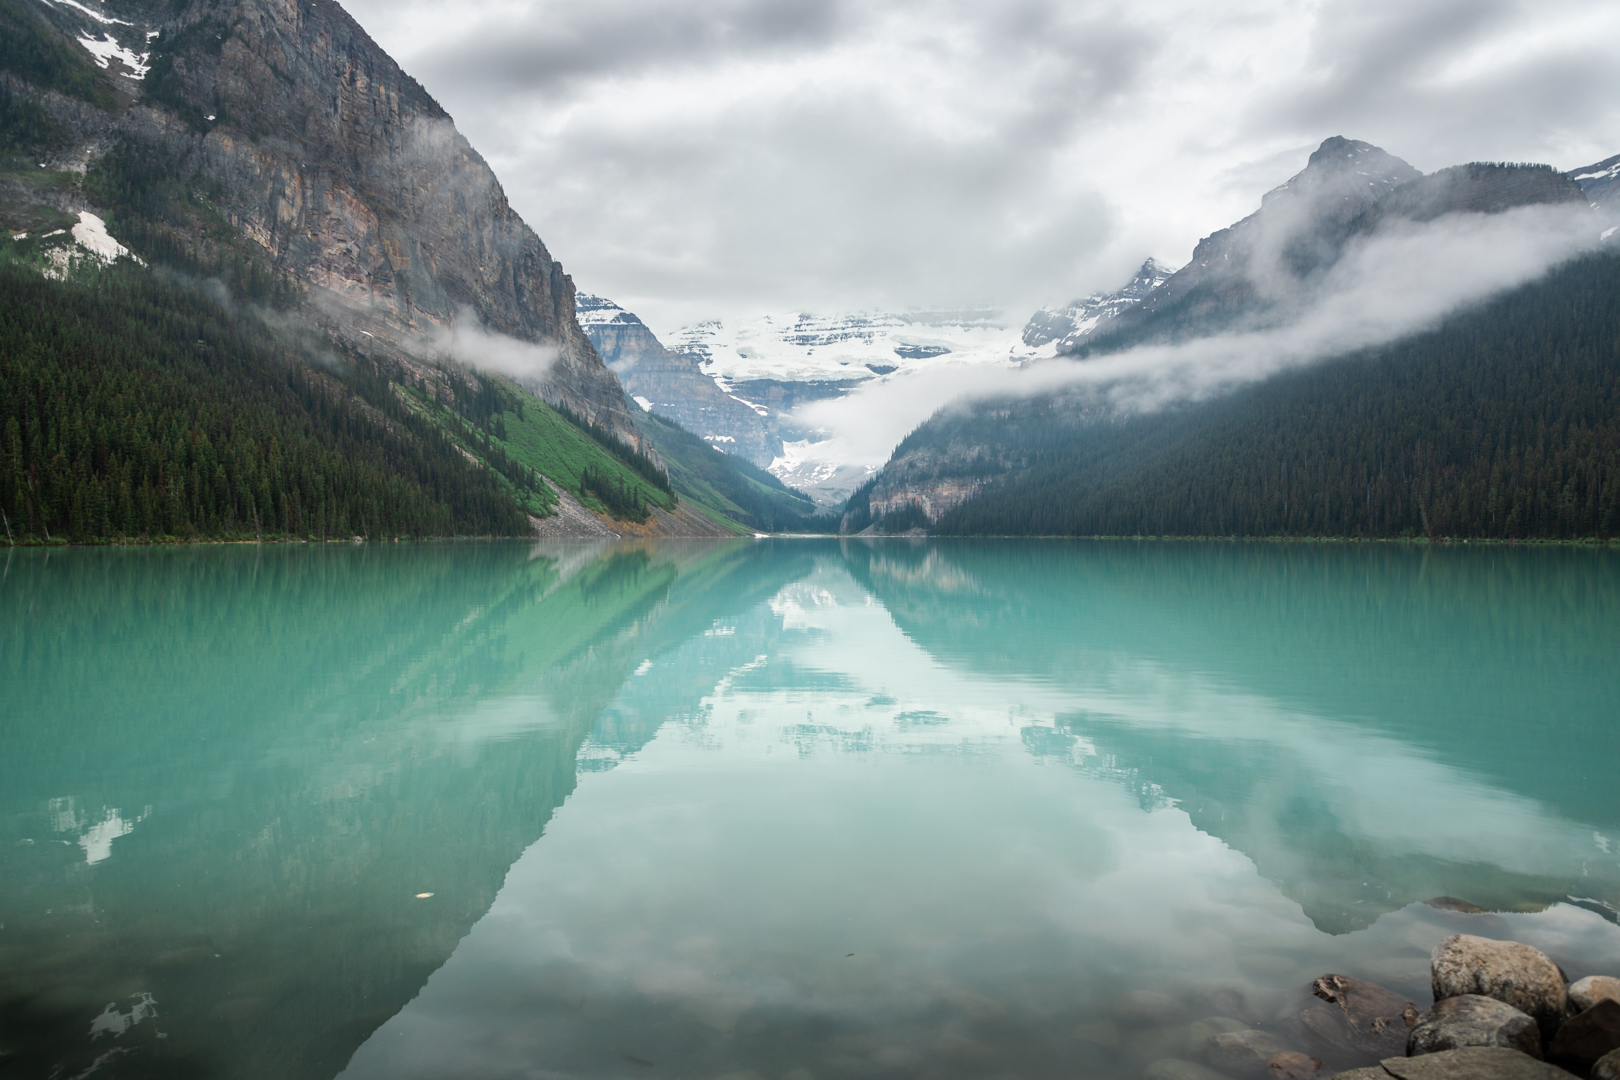 Lake Louise's beautiful aquamarine color changes with the sunlight. It's hue was a little greener as the clouds rolled in.